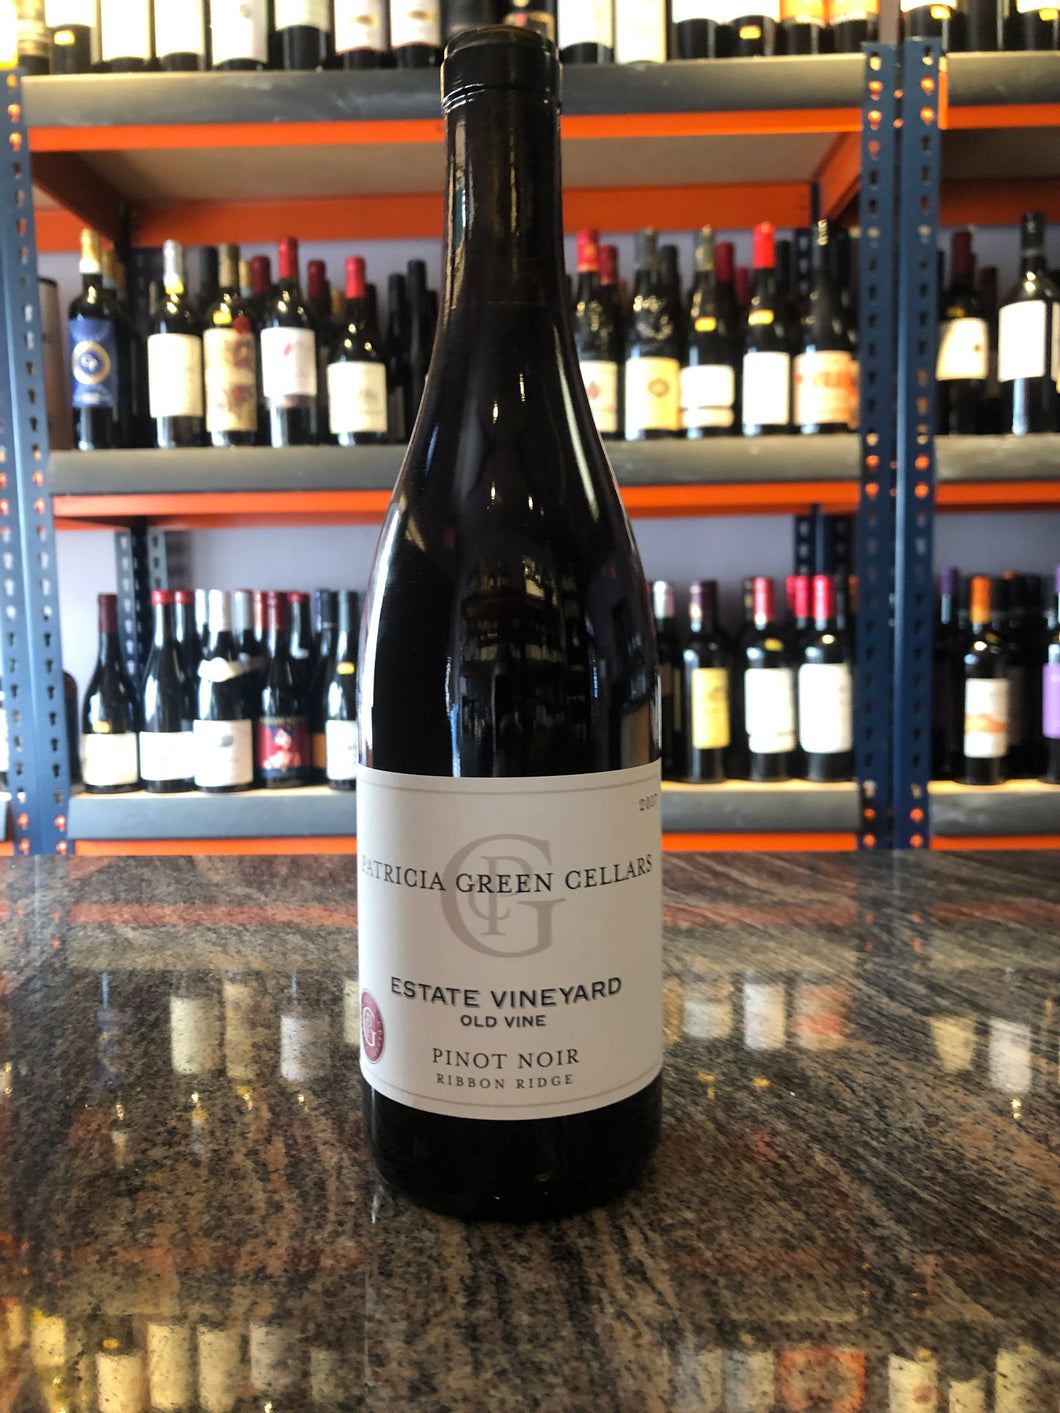 2017 Patricia Green Cellars Estate Old Vine Pinot Noir Organic (750ml)